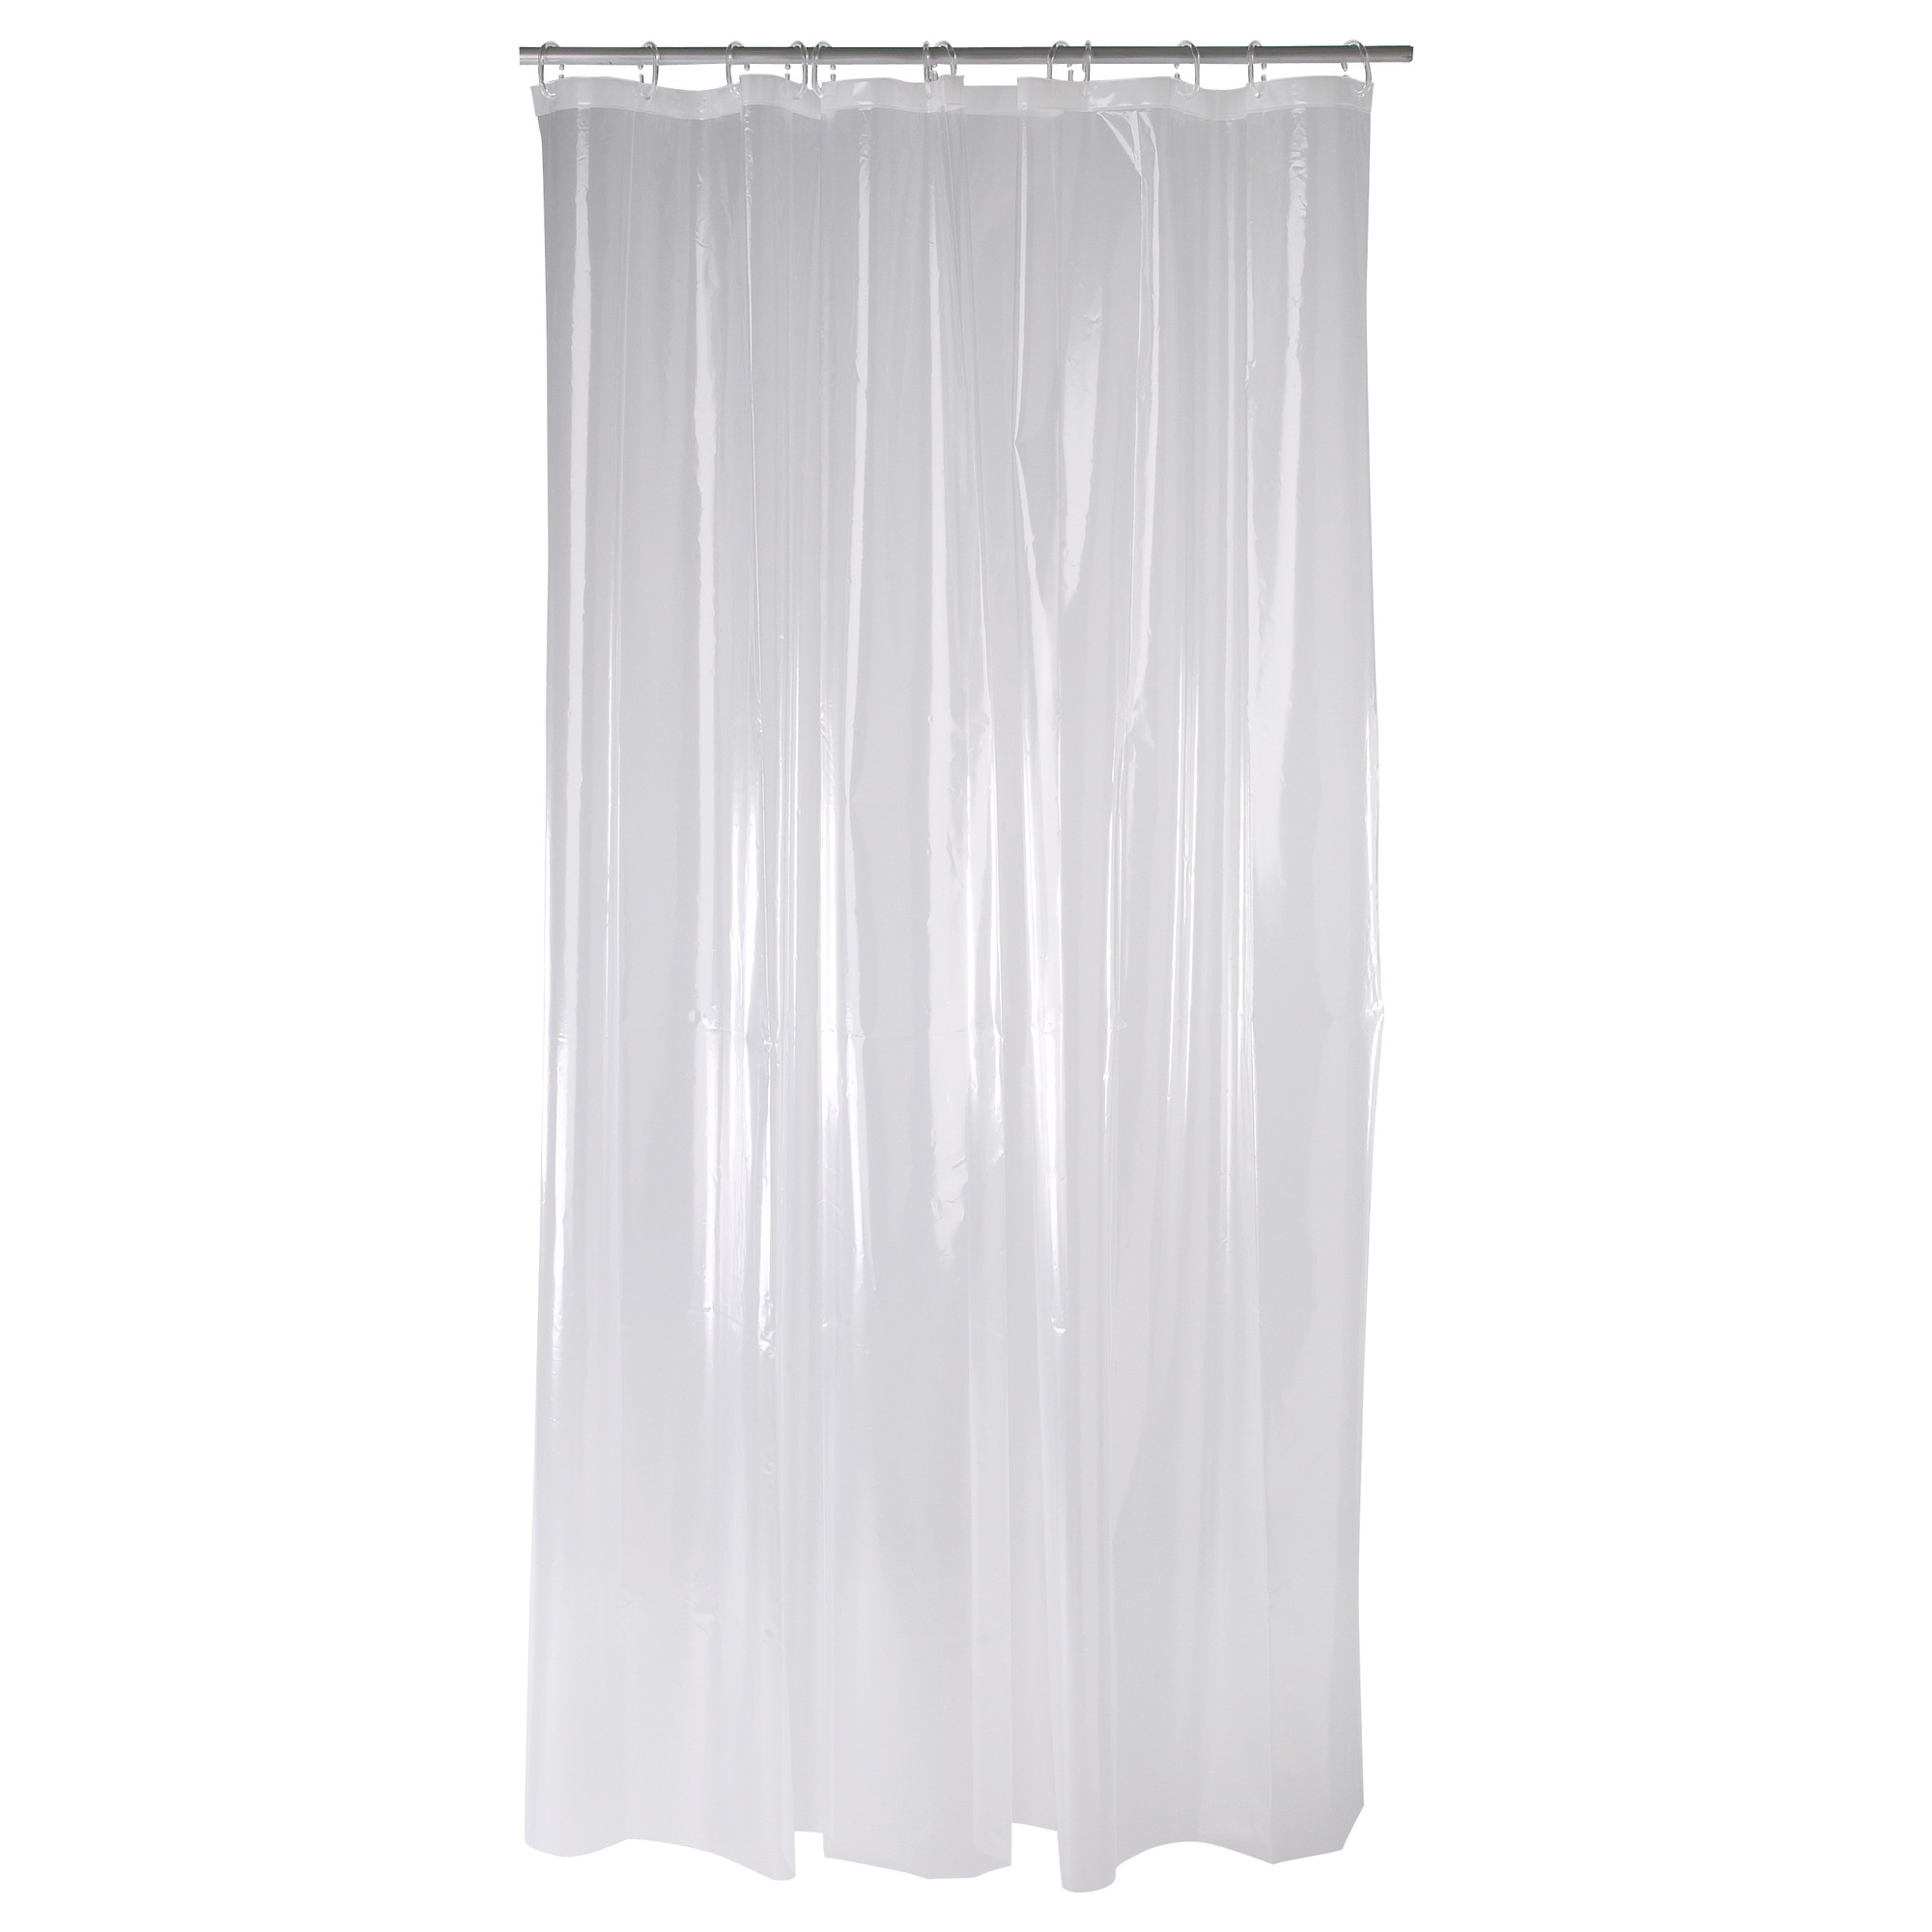 Frosted Shower Curtain | Bathroom Curtain Rods | Ikea Shower Curtain